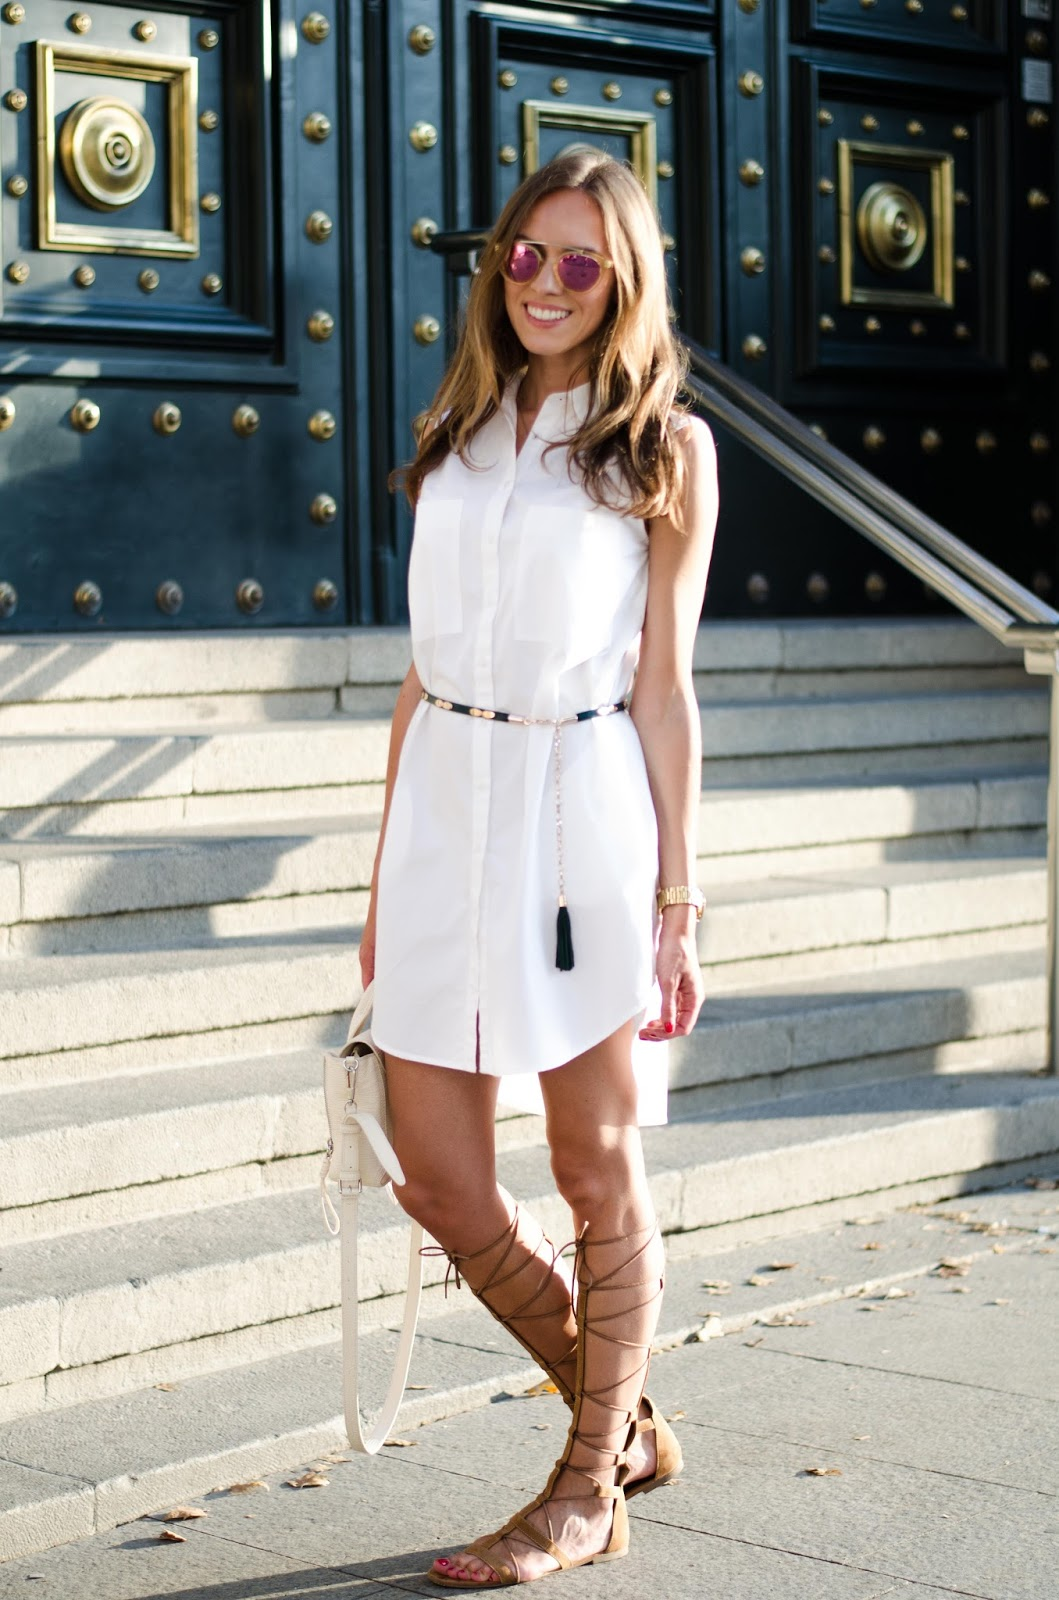 kristjaana mere zara white sleeveless shirt dress summer outfit